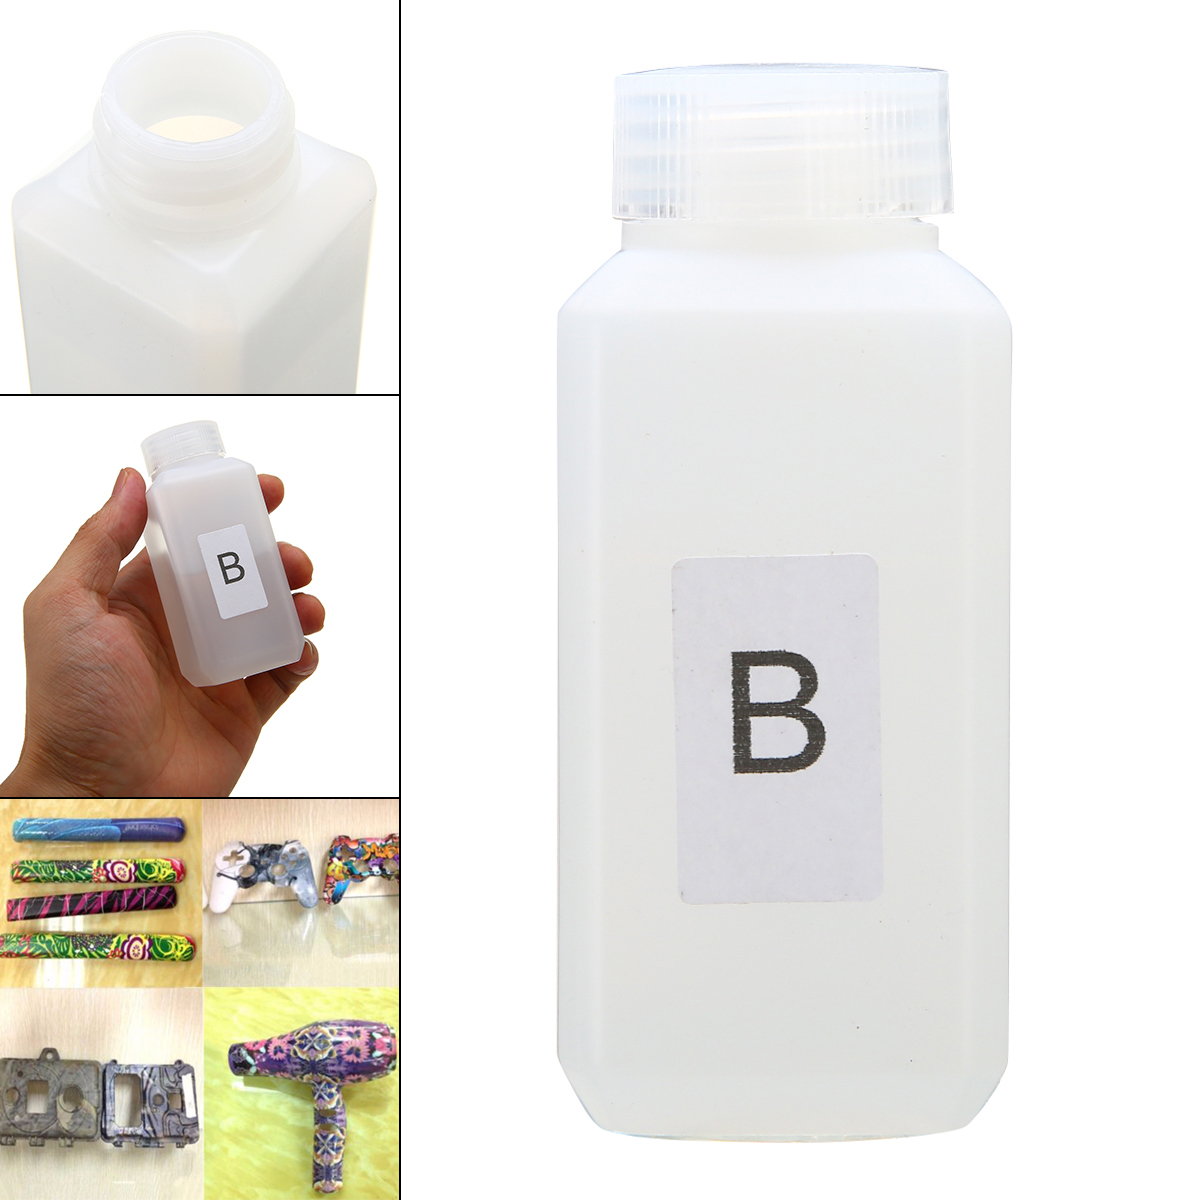 1 Bottle 50ml Activator B Dip Water-transfer Printing Film Activator For Water-transfer Printing Film